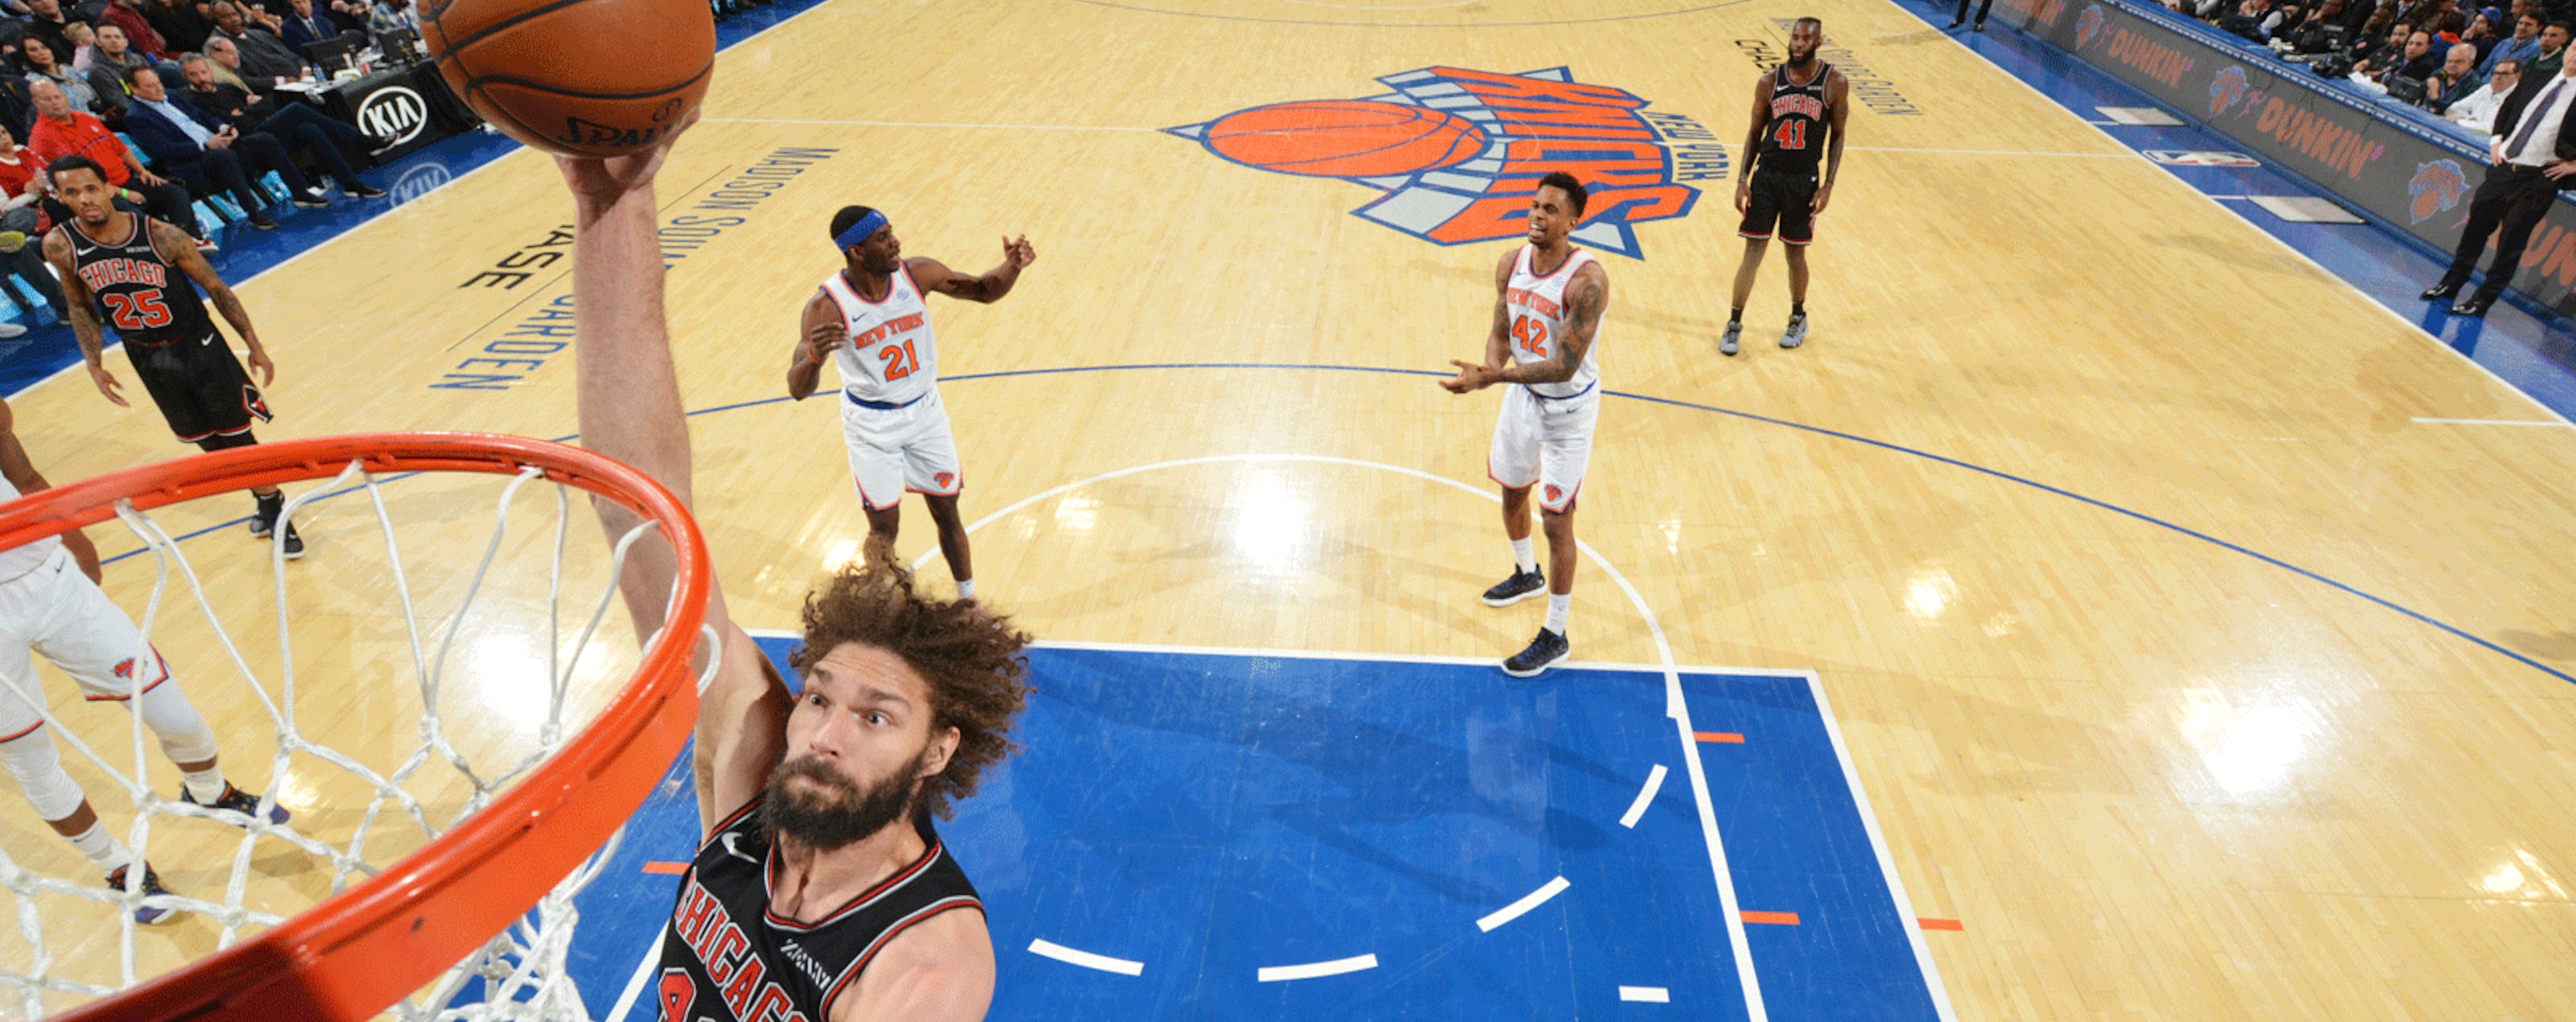 Robin Lopez dunks the ball in a game against the New York Knicks